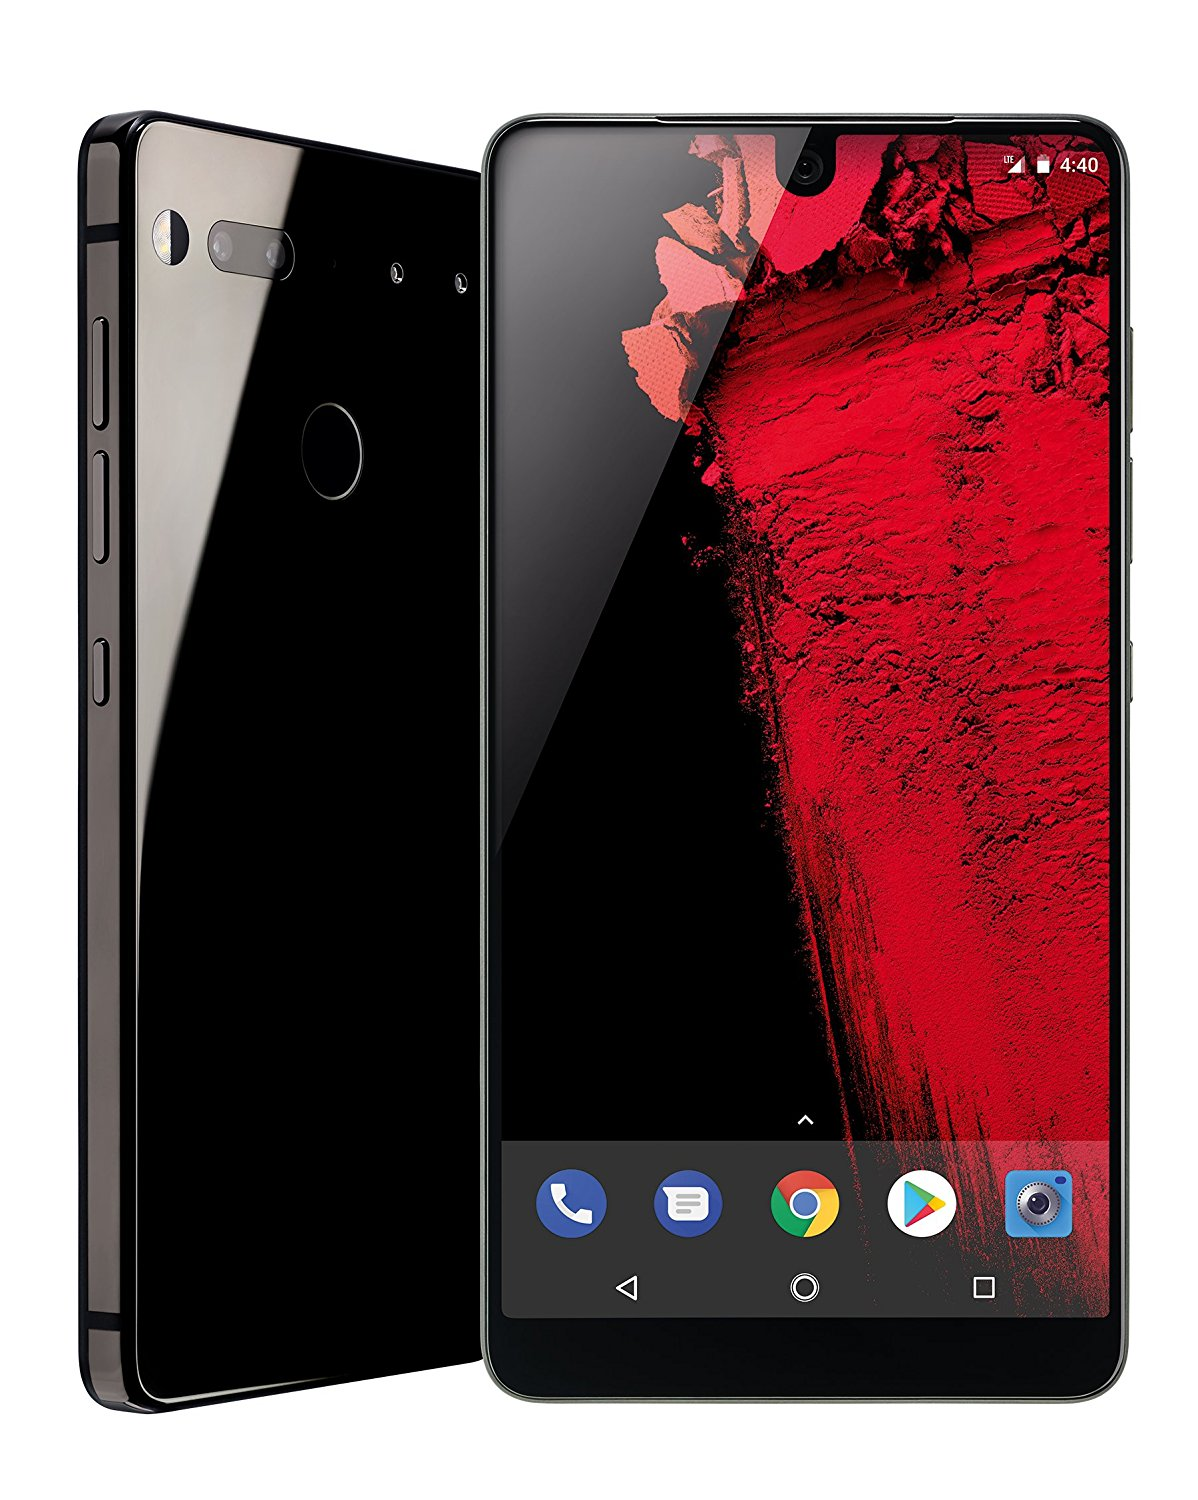 essential phone becomes a more value proposition